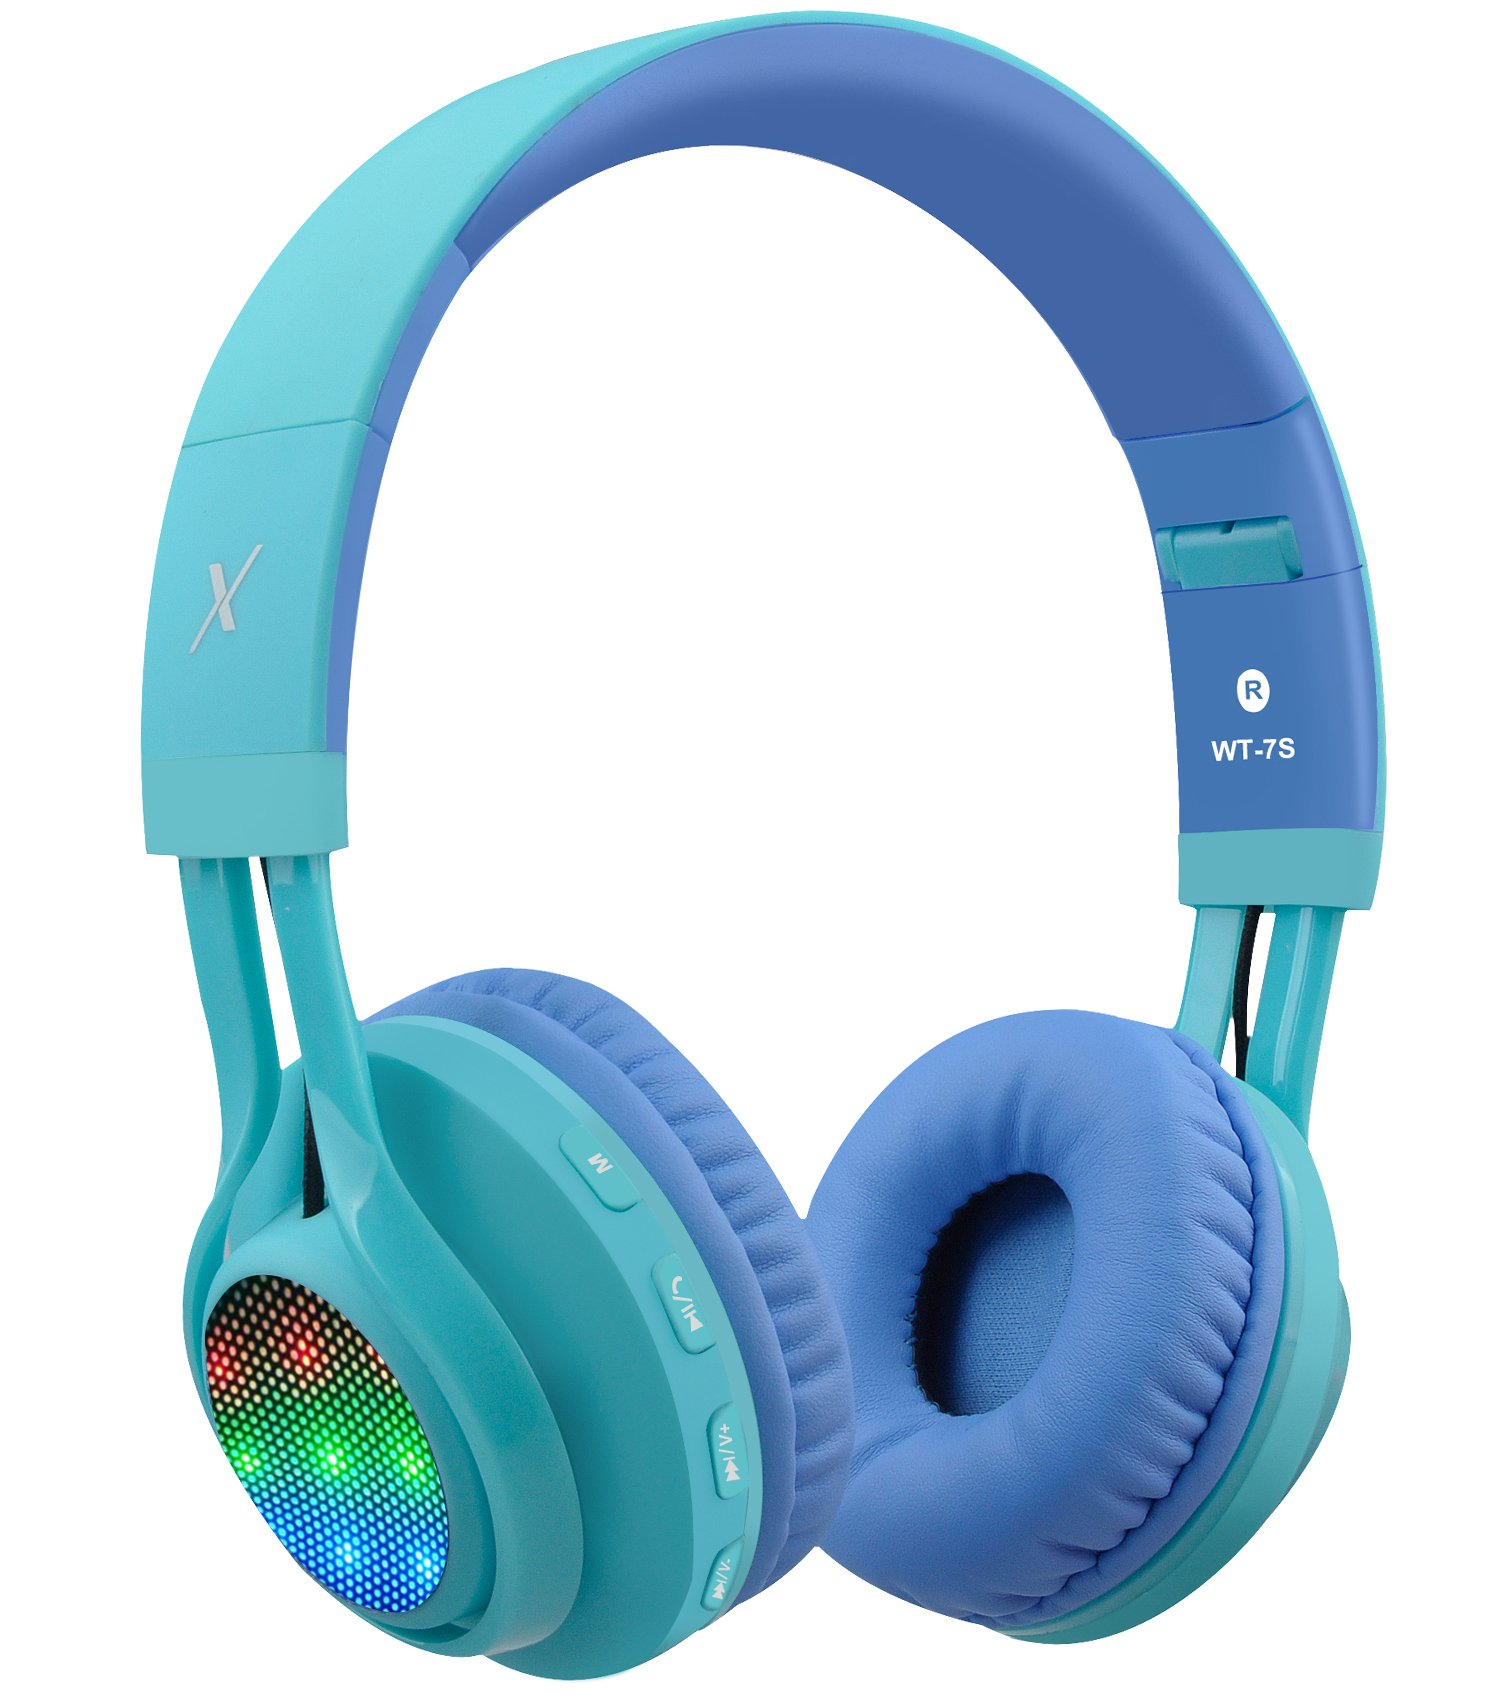 Riwbox WT-7S Bluetooth Headphones, LED Light Up Wireless Foldable Stereo Headset with Microphone and Volume Control for PC/iPhone/ TV/iPad (Blue)